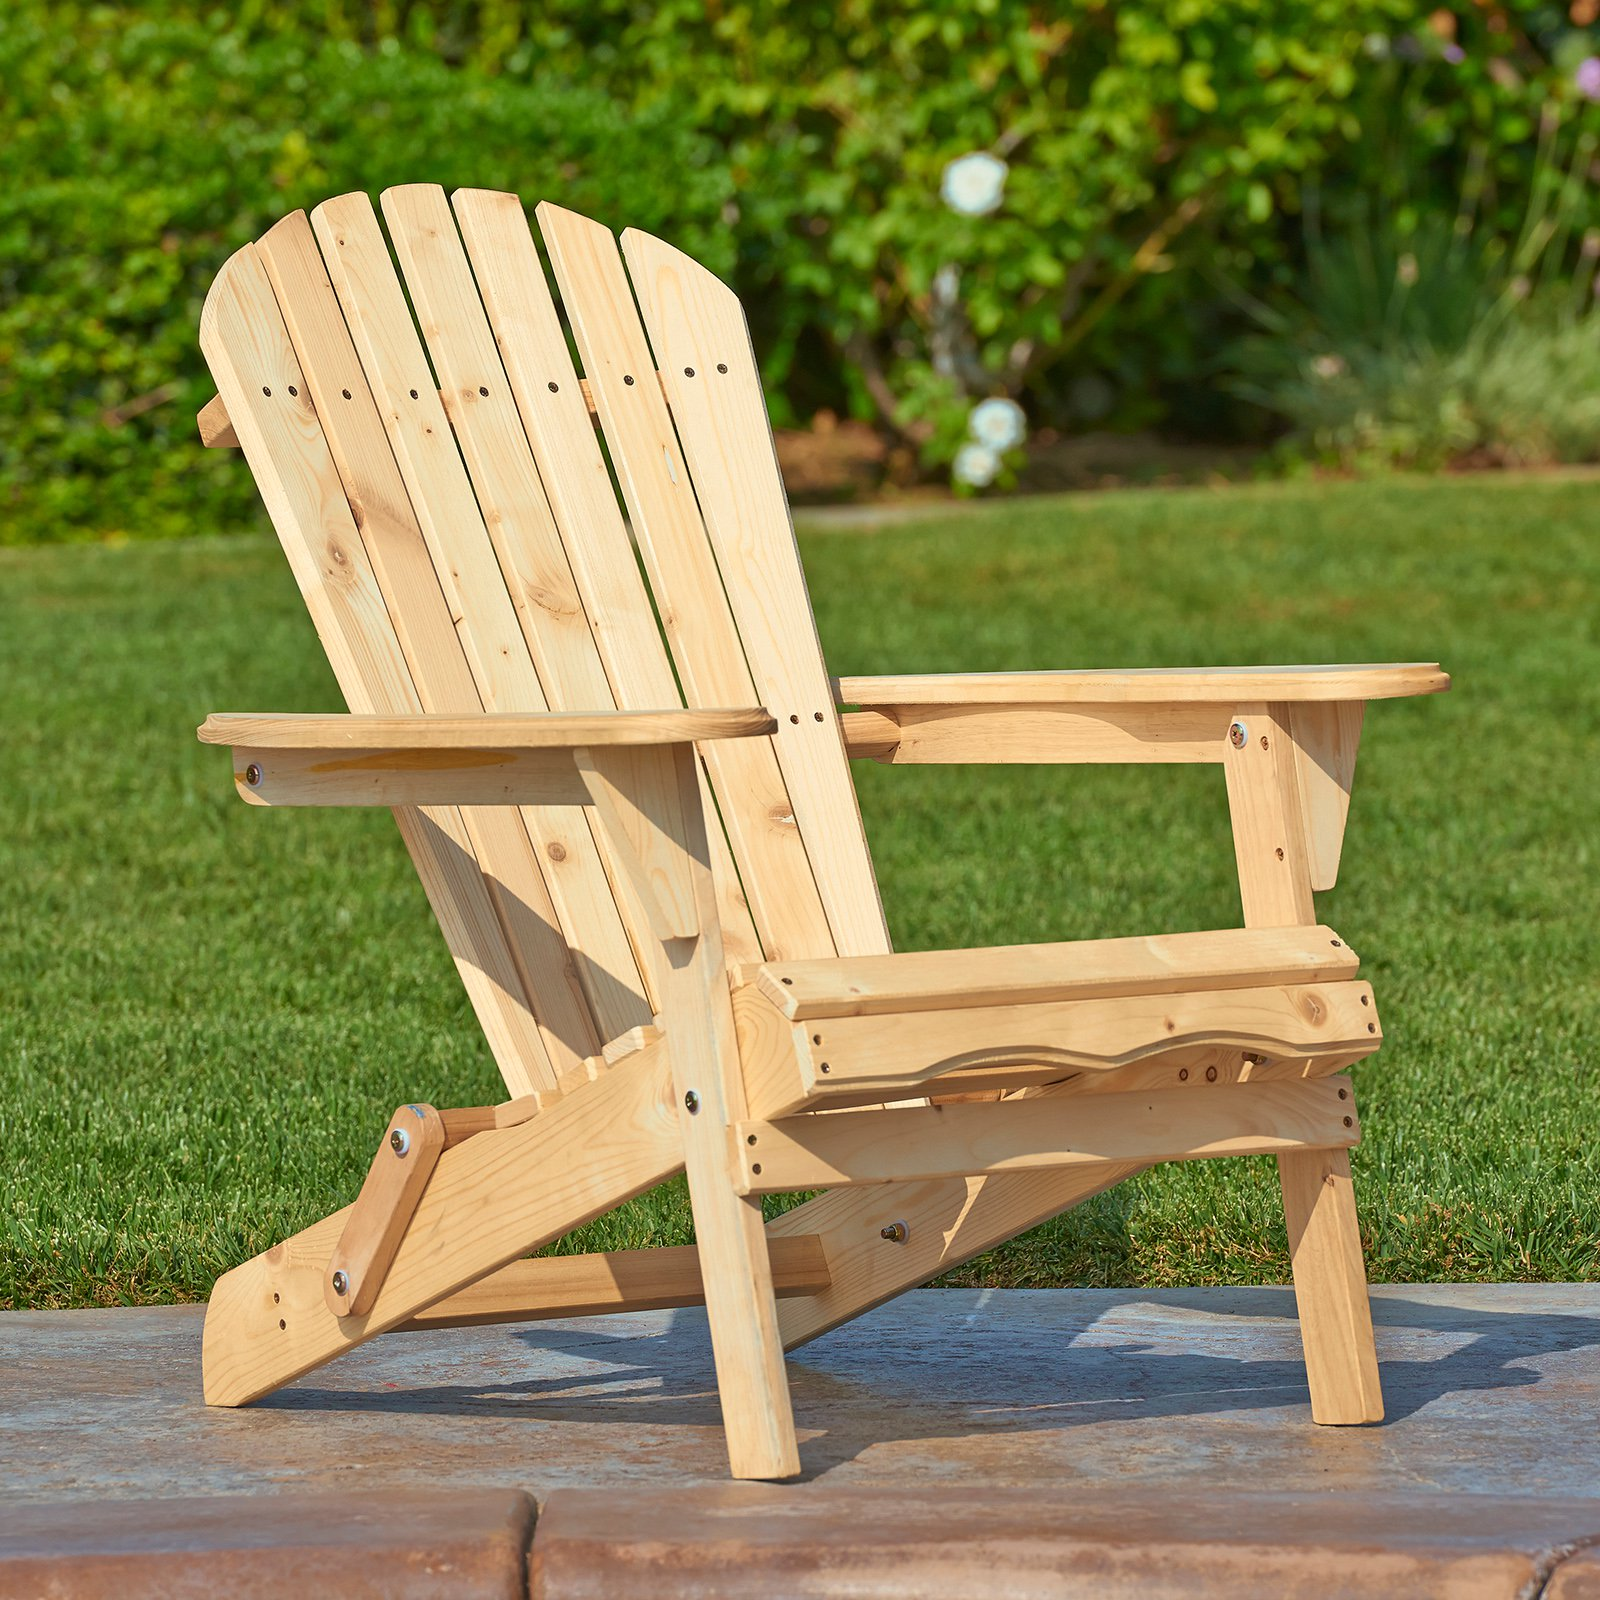 Thy-Home Villeret Folding Adirondack Chair by The-Hom